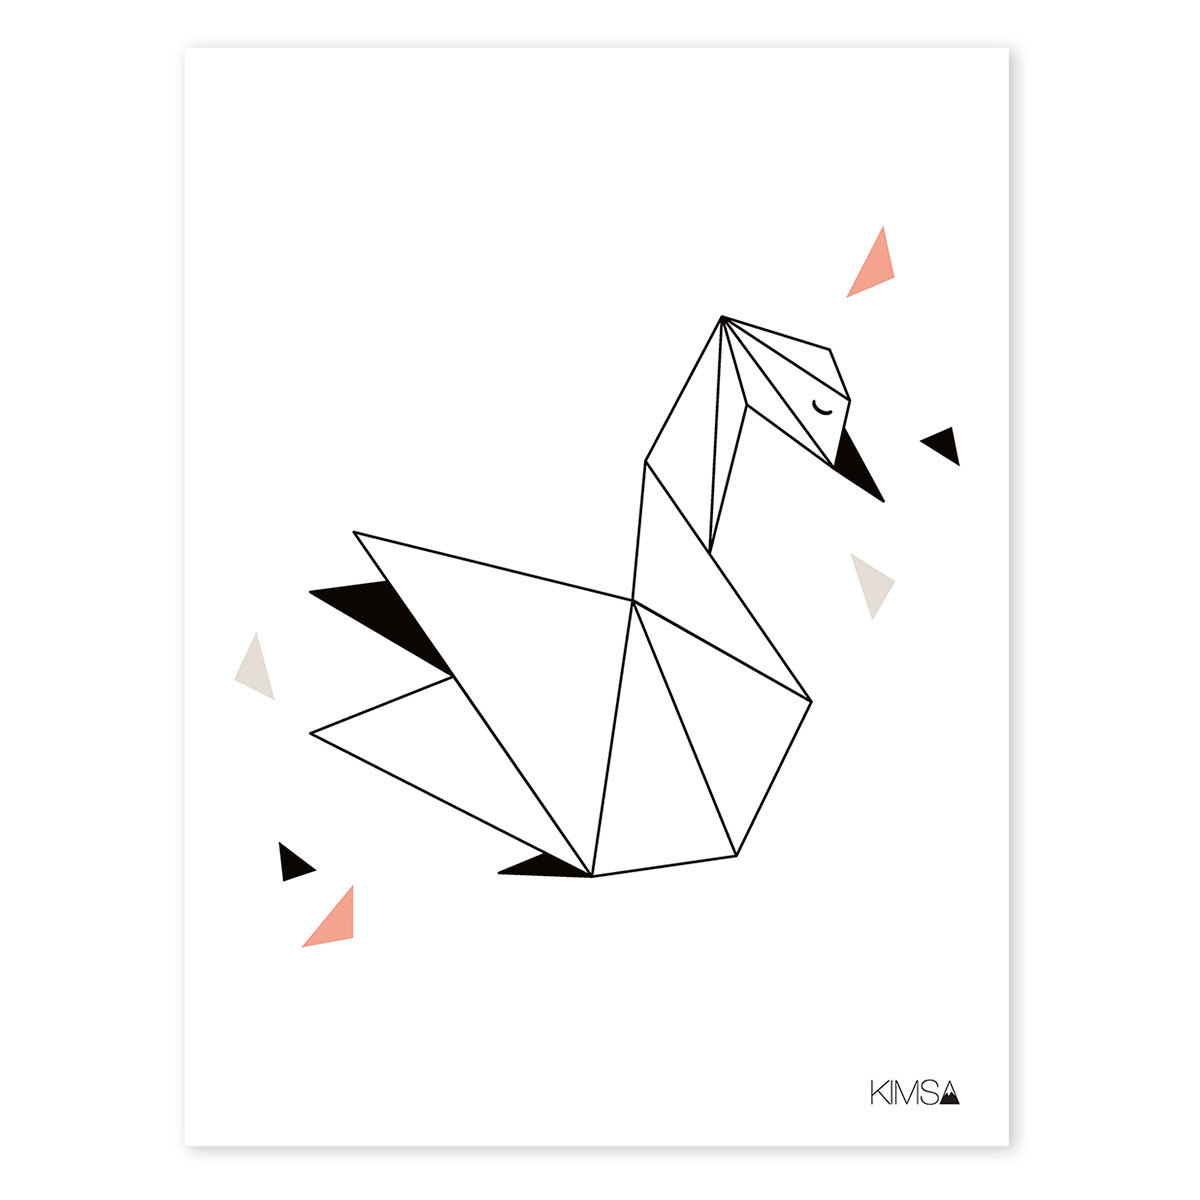 Affiche & poster Origami Play - Affiche Géométrique Cygne Origami Play - Affiche Géométrique Cygne